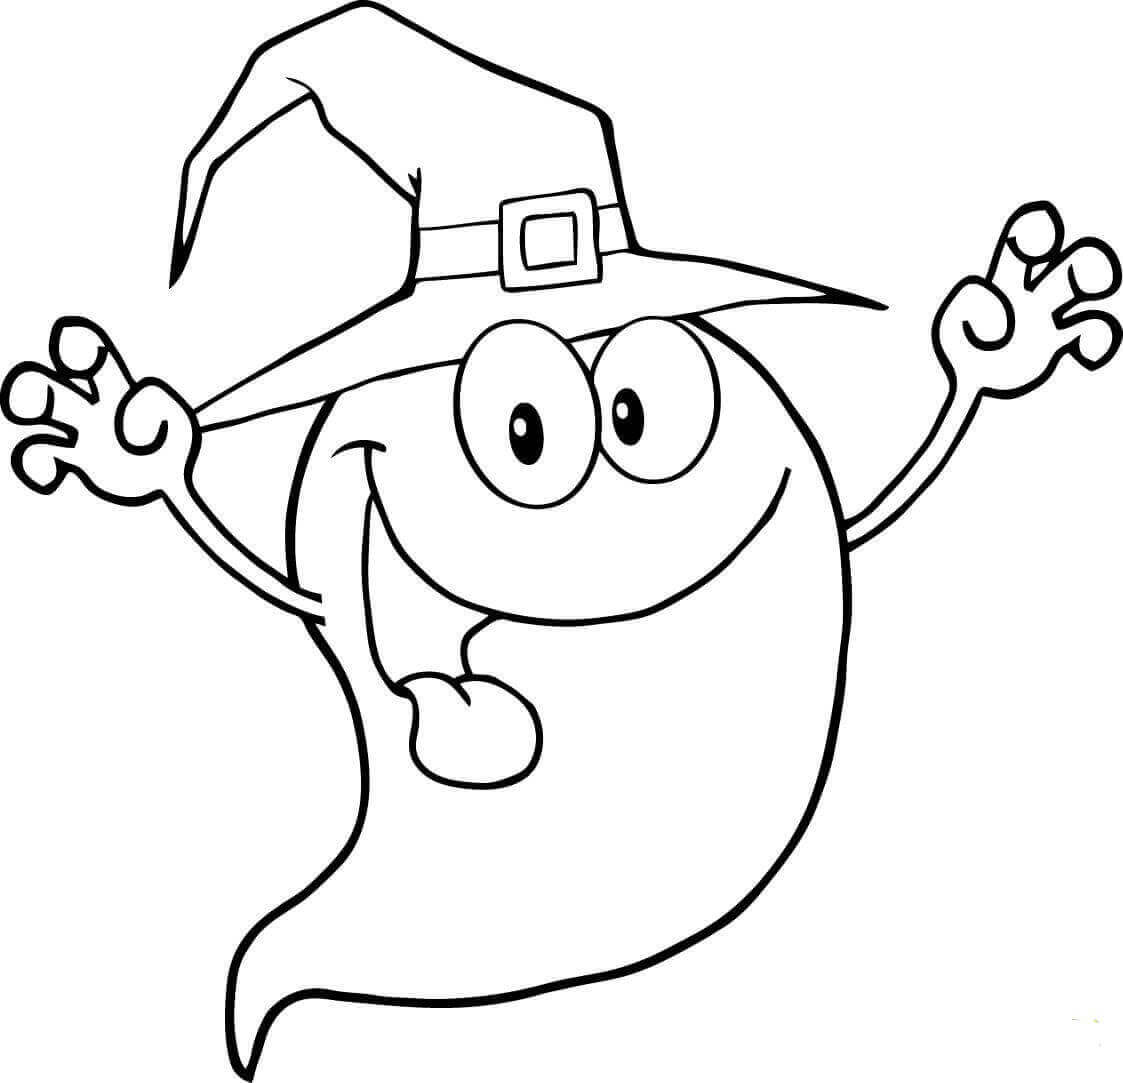 coloring pages ghost coloring pages ghosts coloring pages and clip art free ghost pages coloring